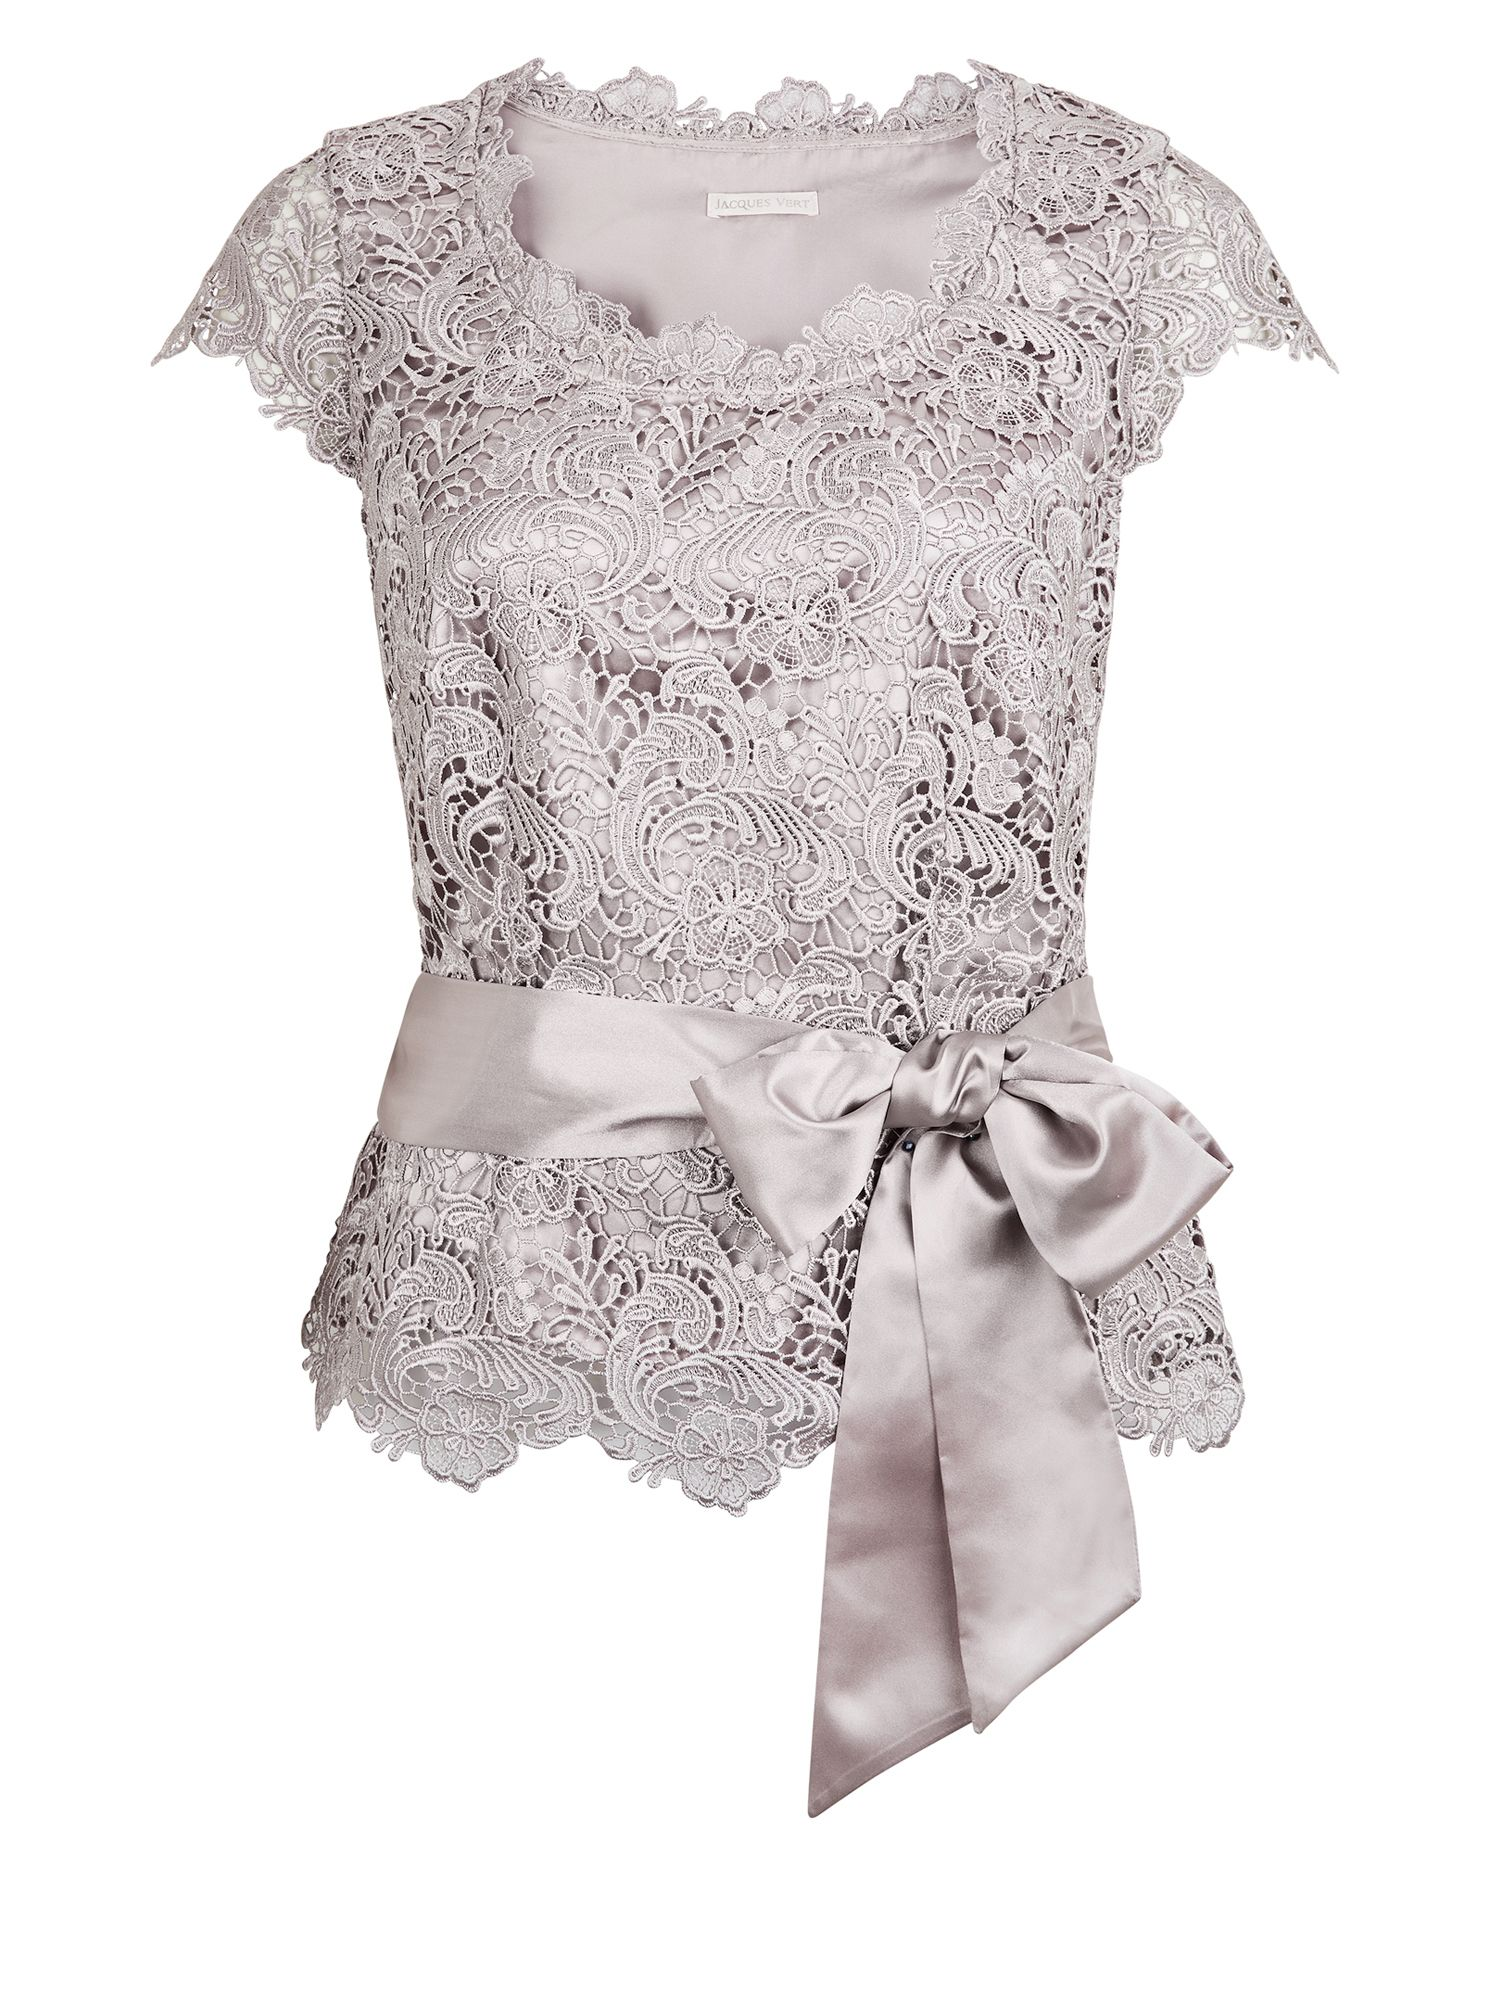 Luxury lace belted top